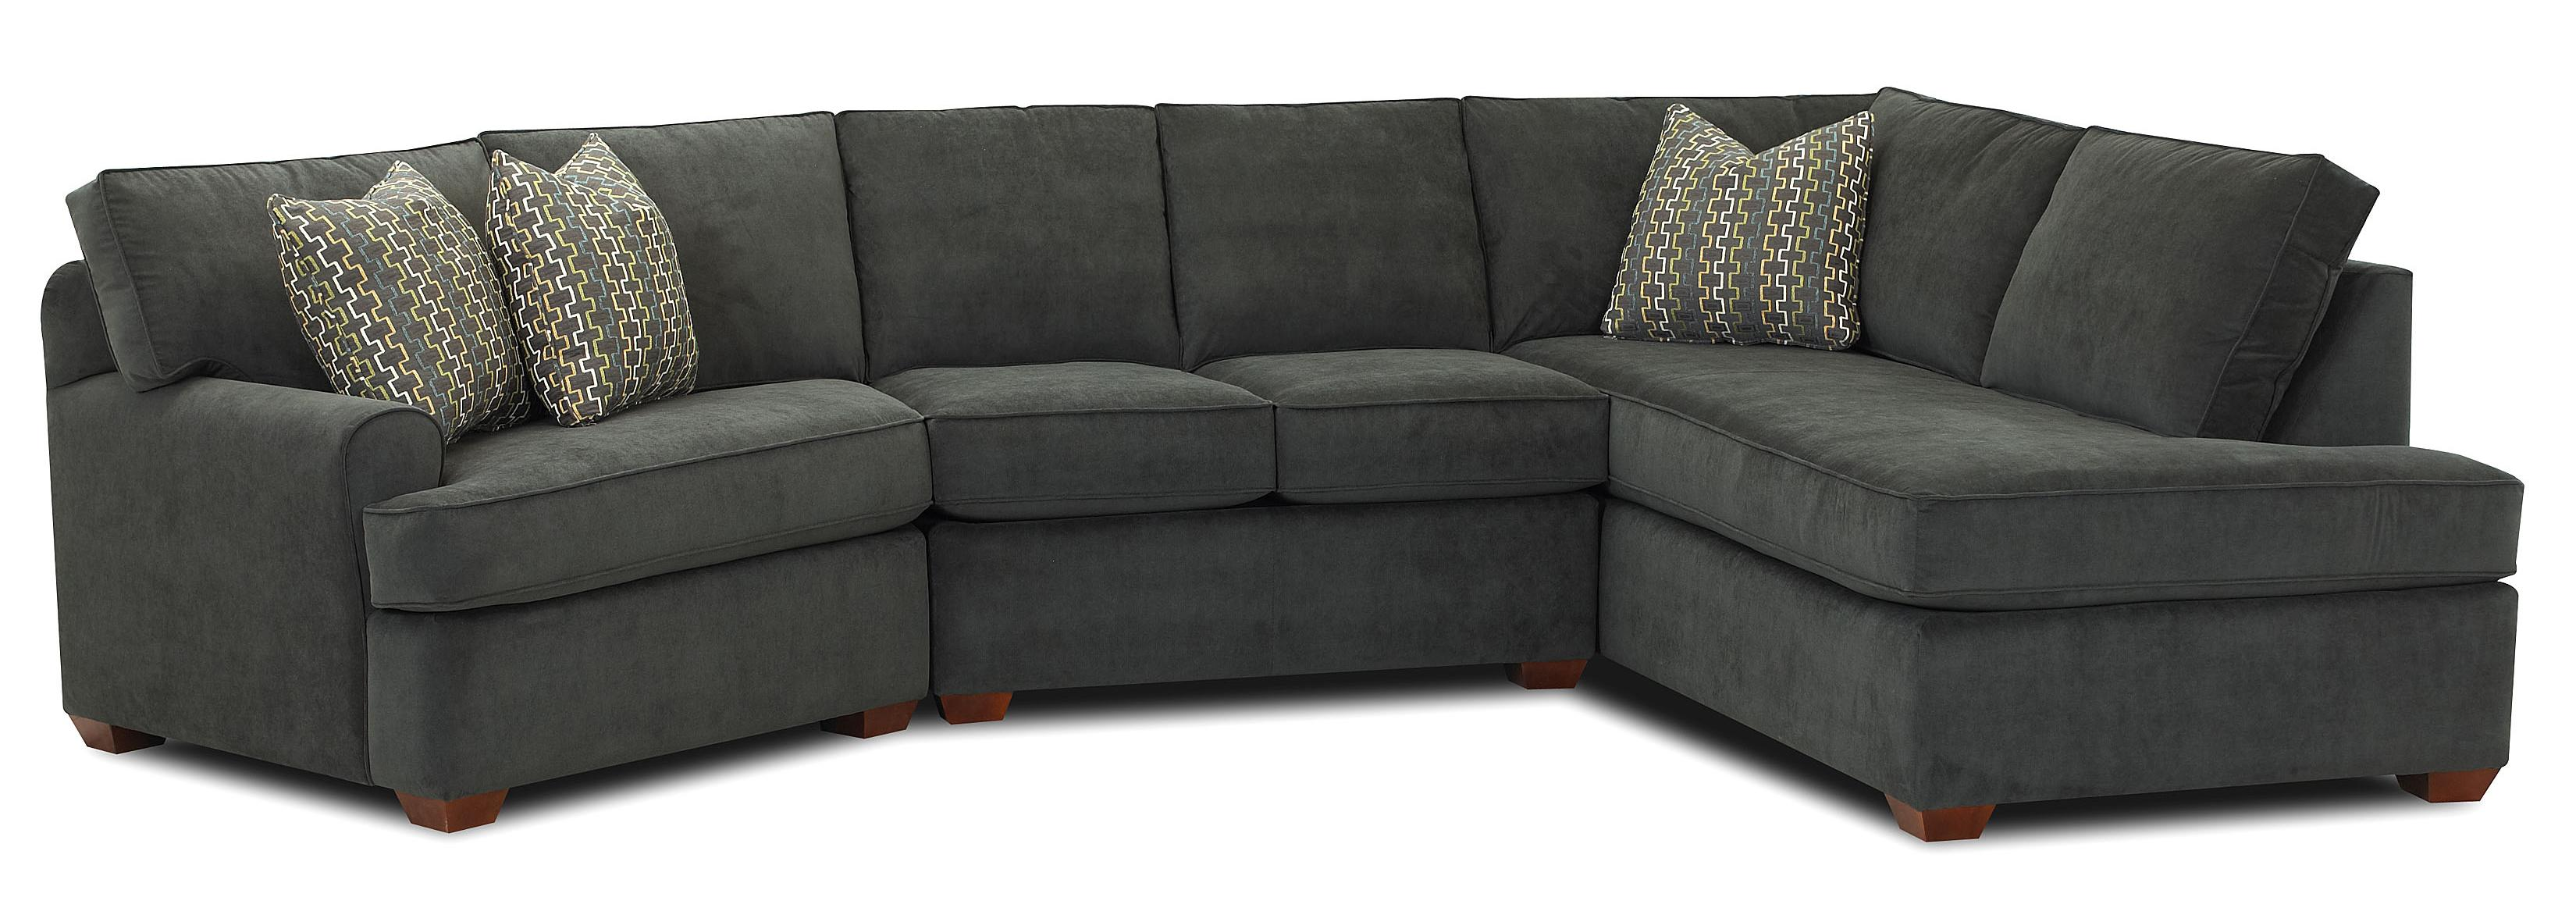 Hybrid Sectional Sofa with RightFacing Sofa Chaise by